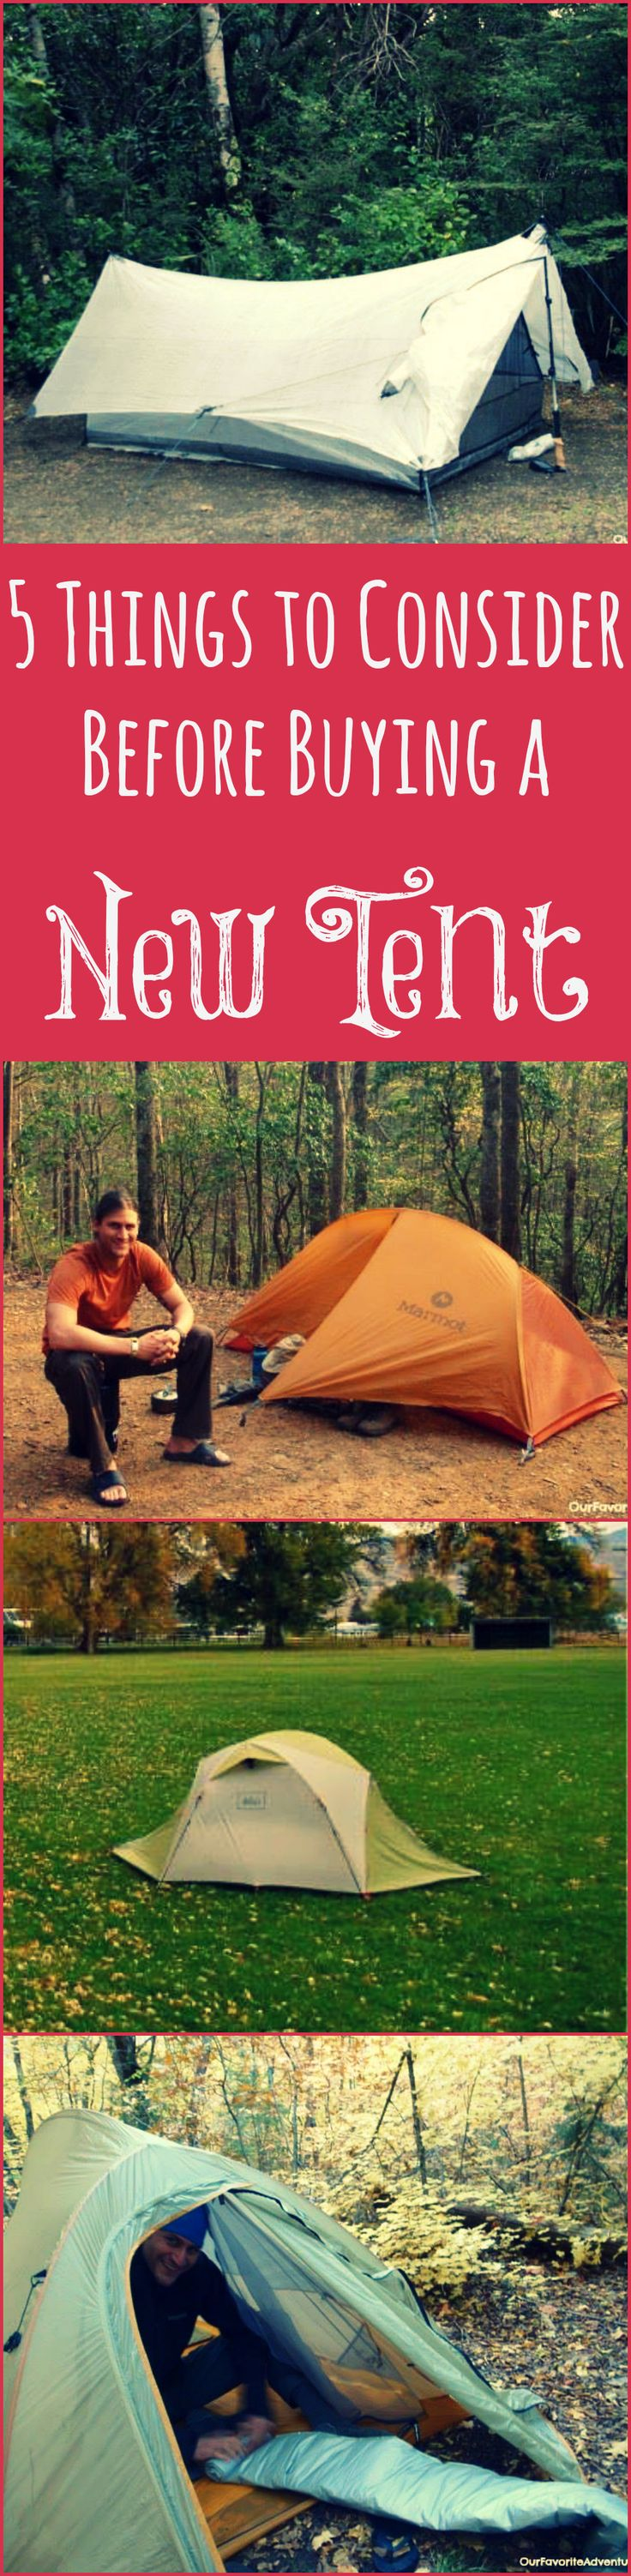 15 Best Our Favorite Camping Gear Images On Pinterest